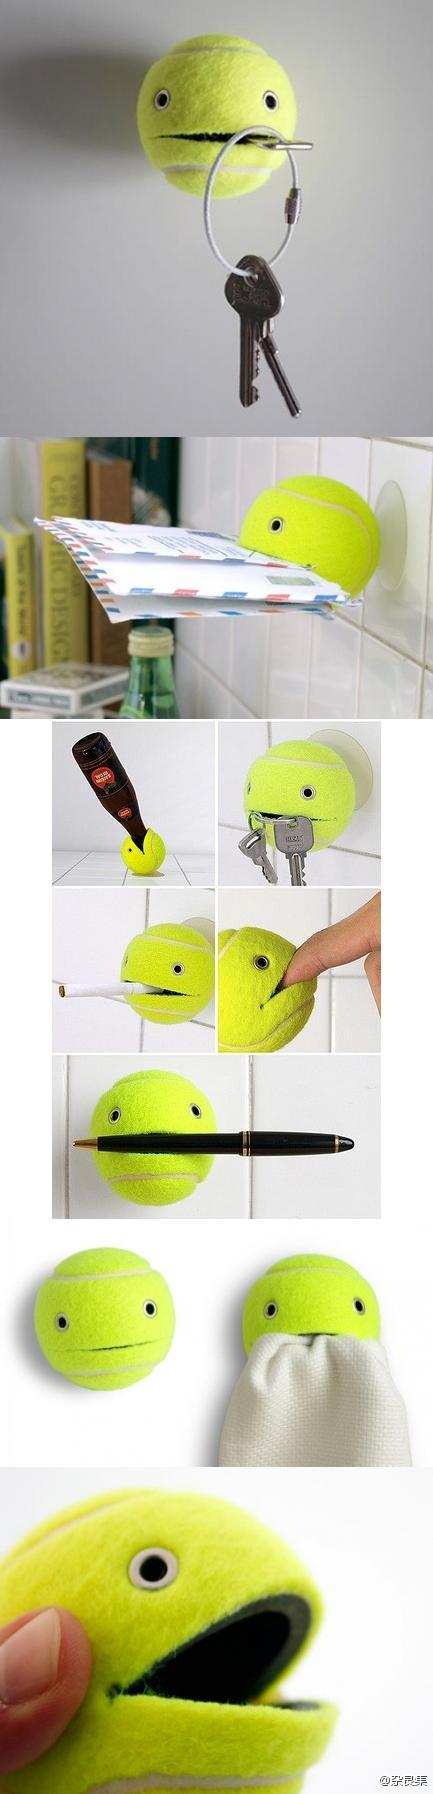 Tennis ball helper in plastics diy accessories  with Tennis sport Ball Accessories